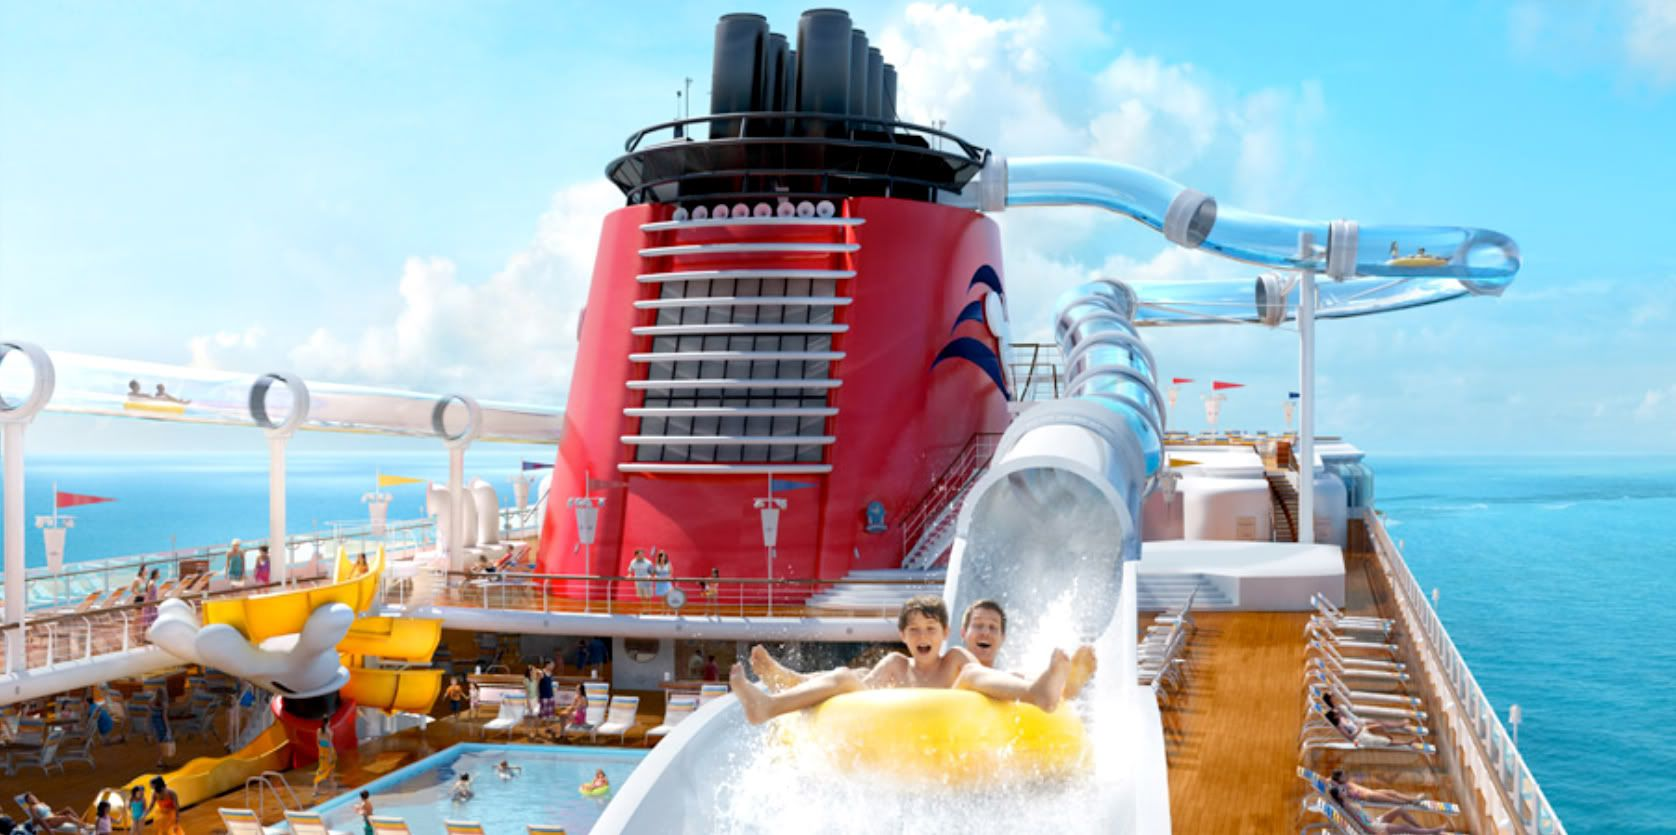 Disney Dream Cruise Ship Future Past Vacation Spots - The dream cruise ship disney